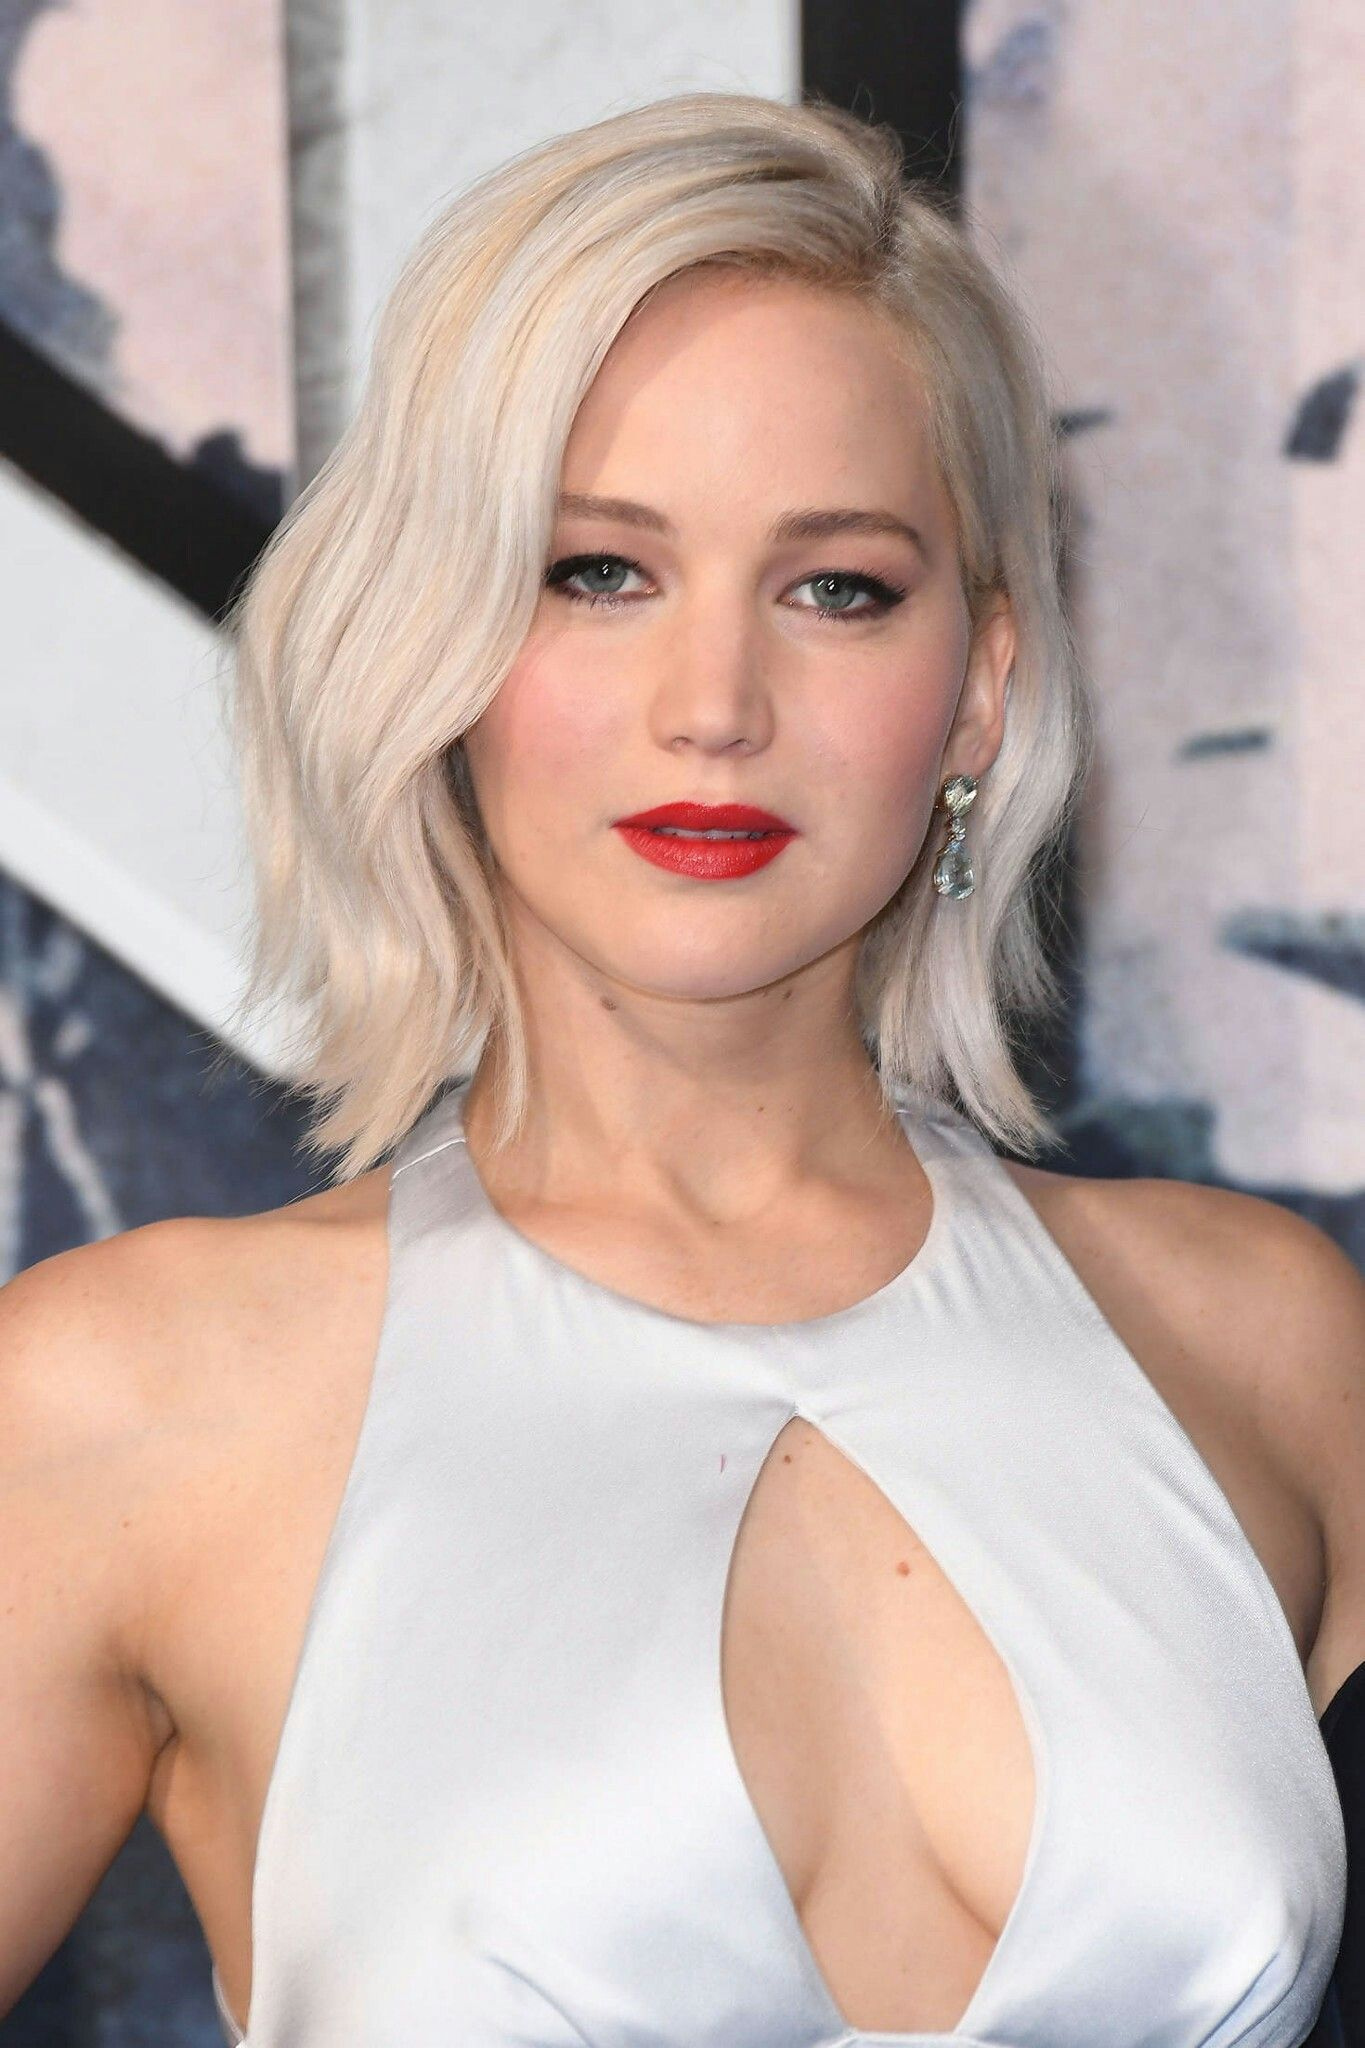 Pin by Gail Yeh on Hair I Am | Jennifer lawrence pics ...